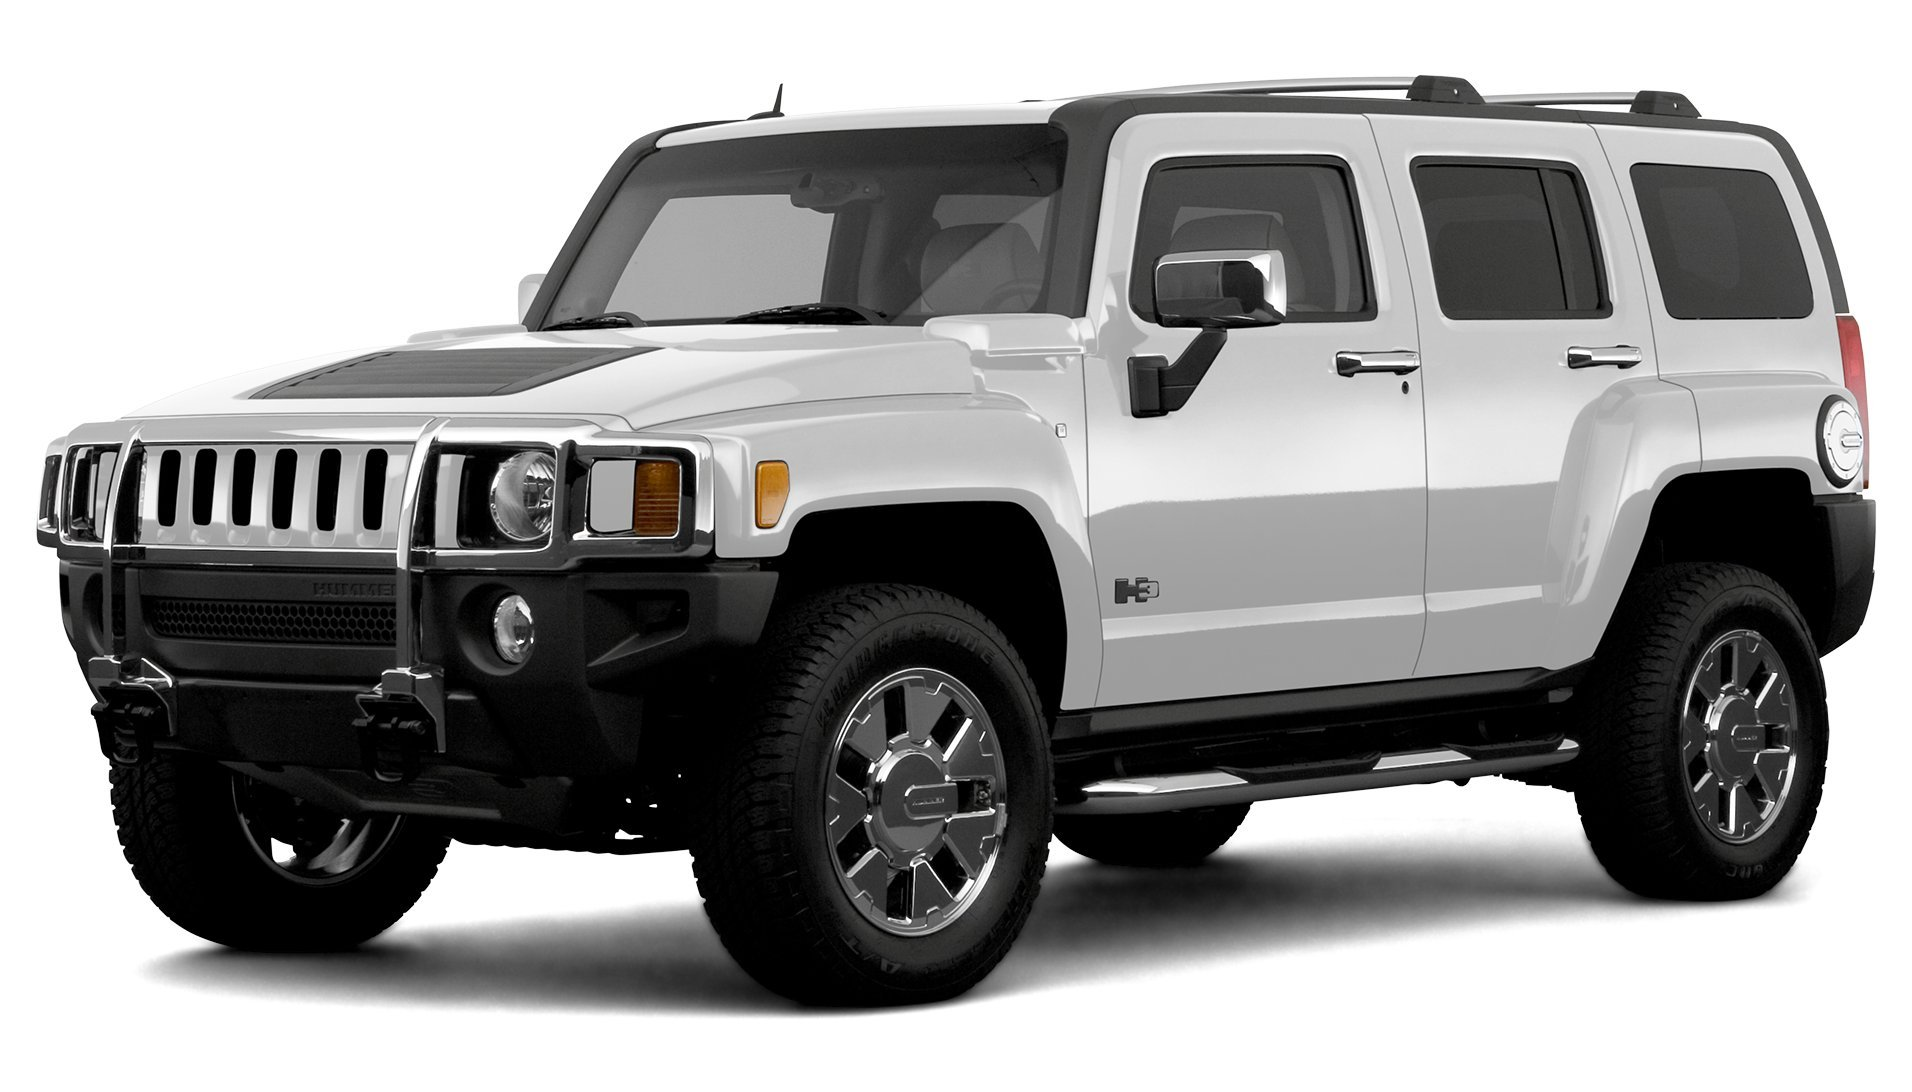 2007 hummer h3 suv 4 wheel drive 4 door